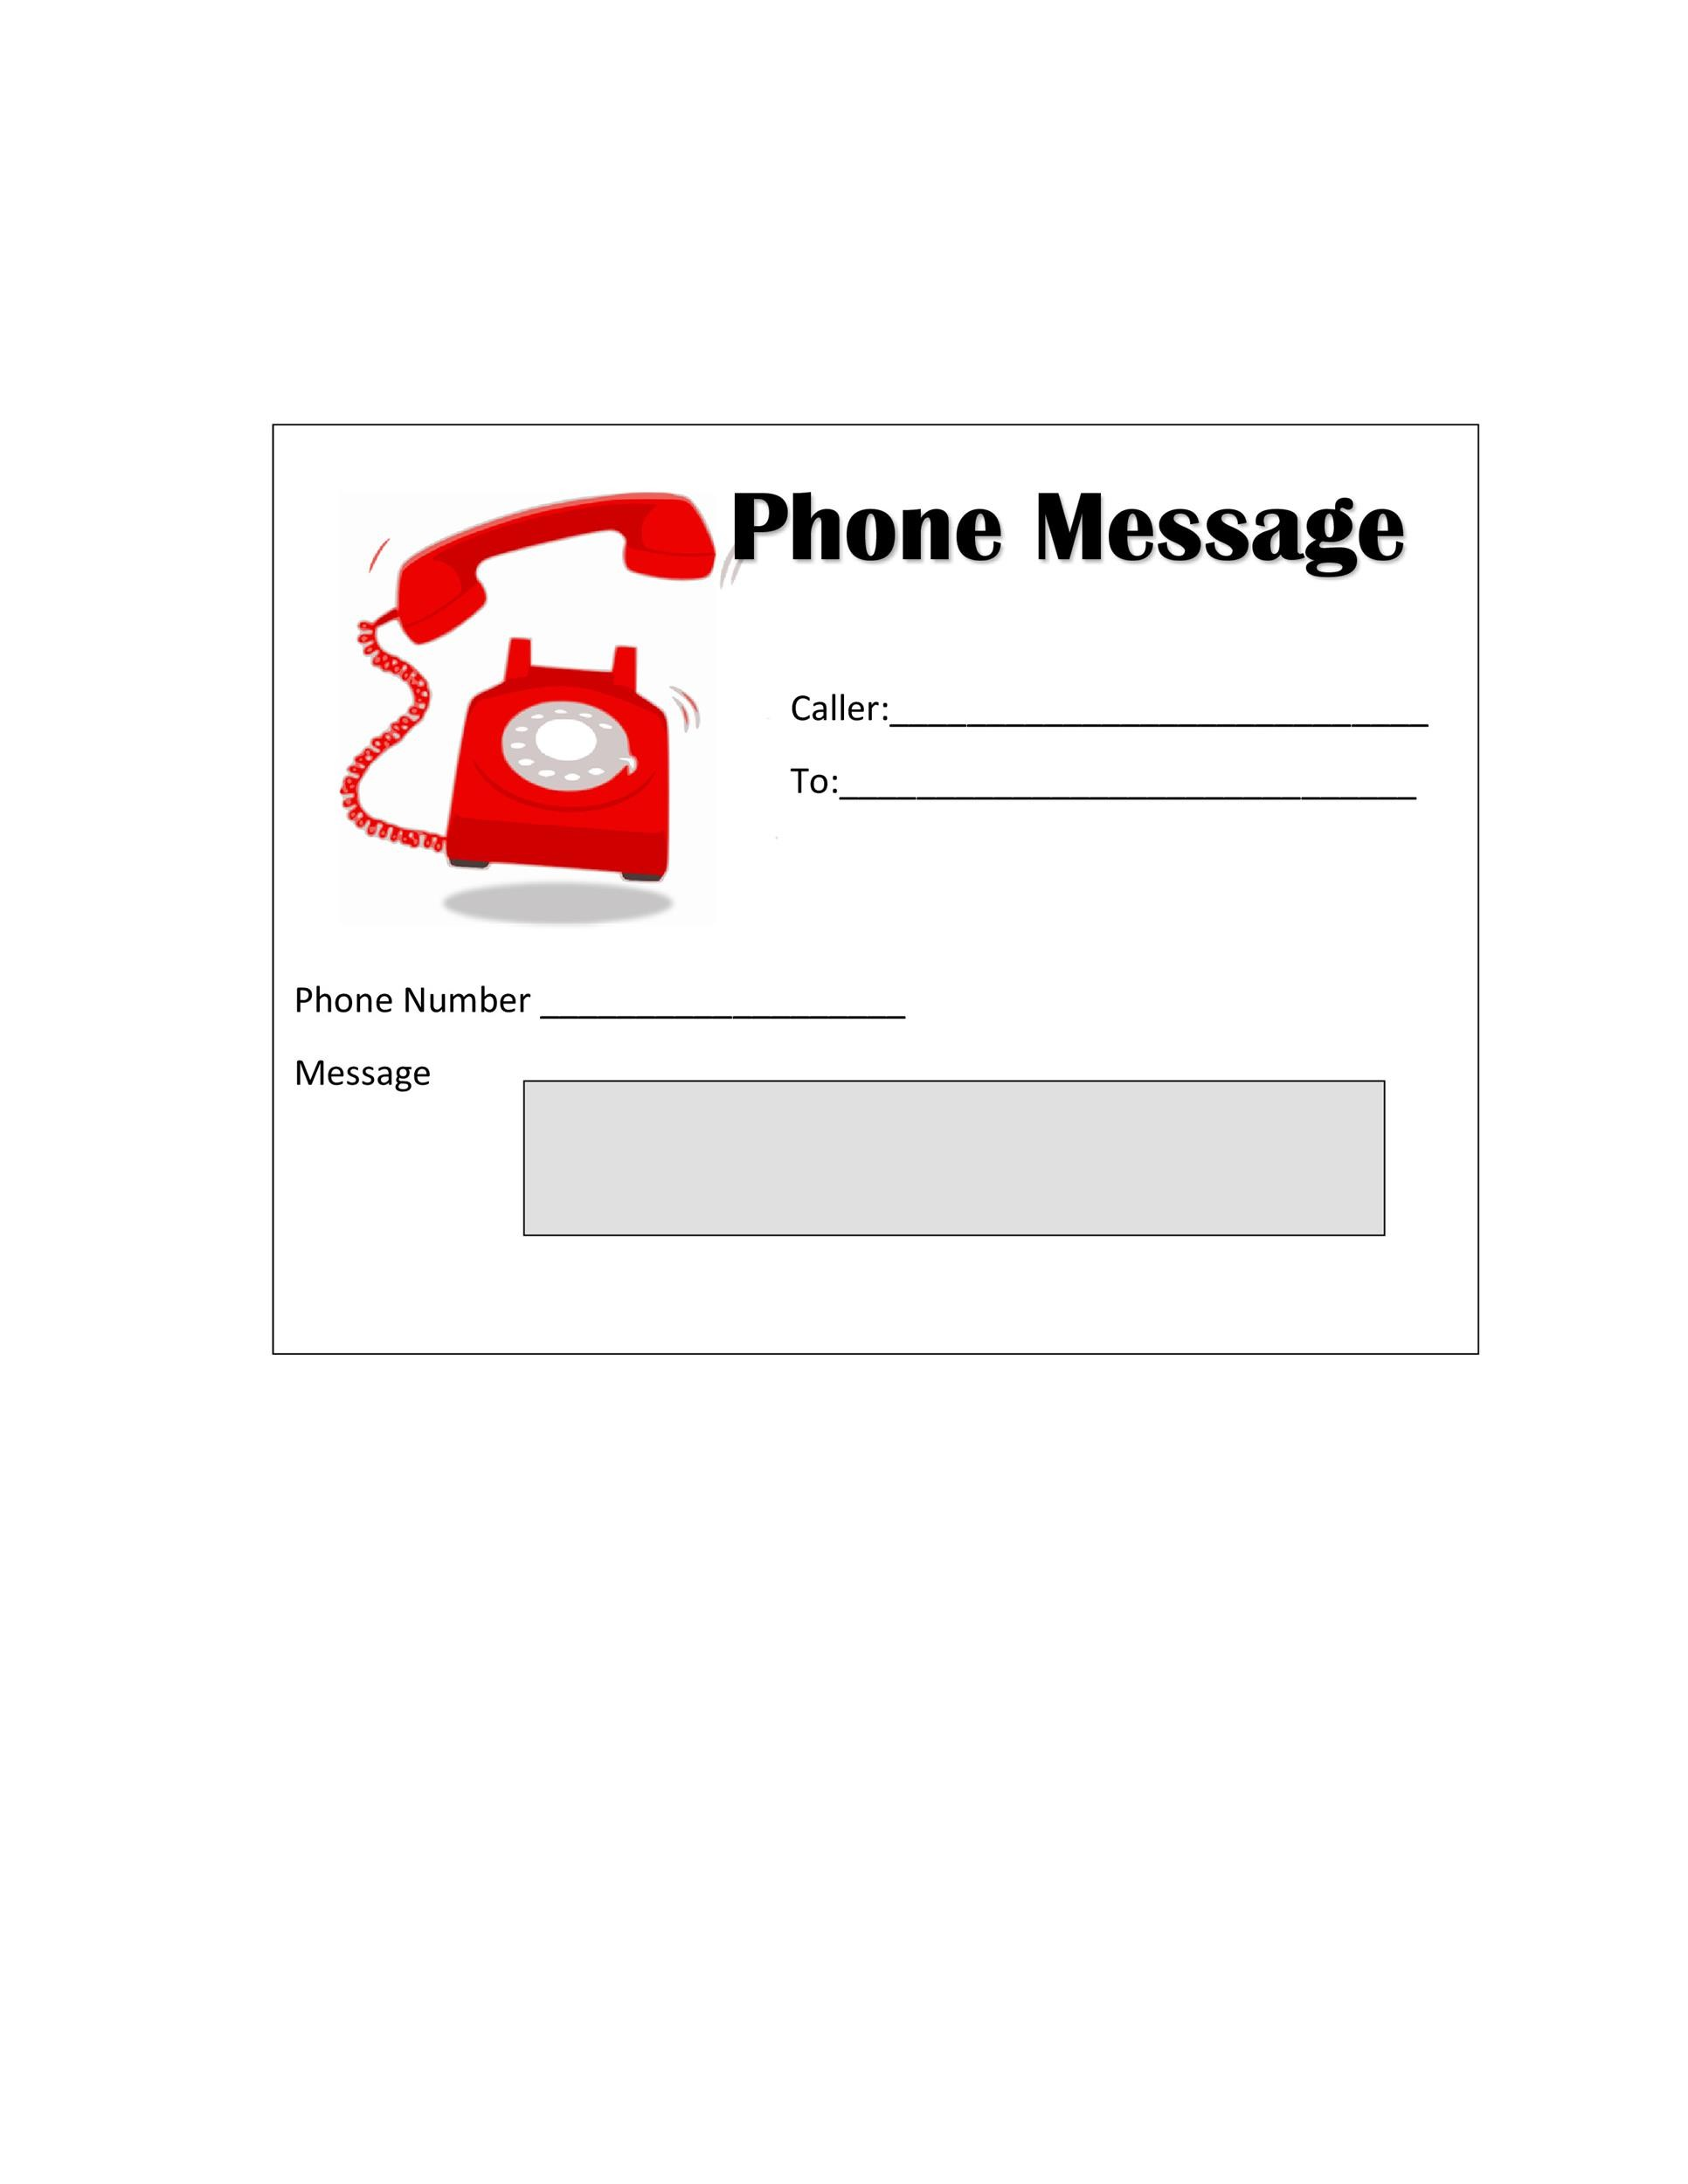 Free phone message template 36